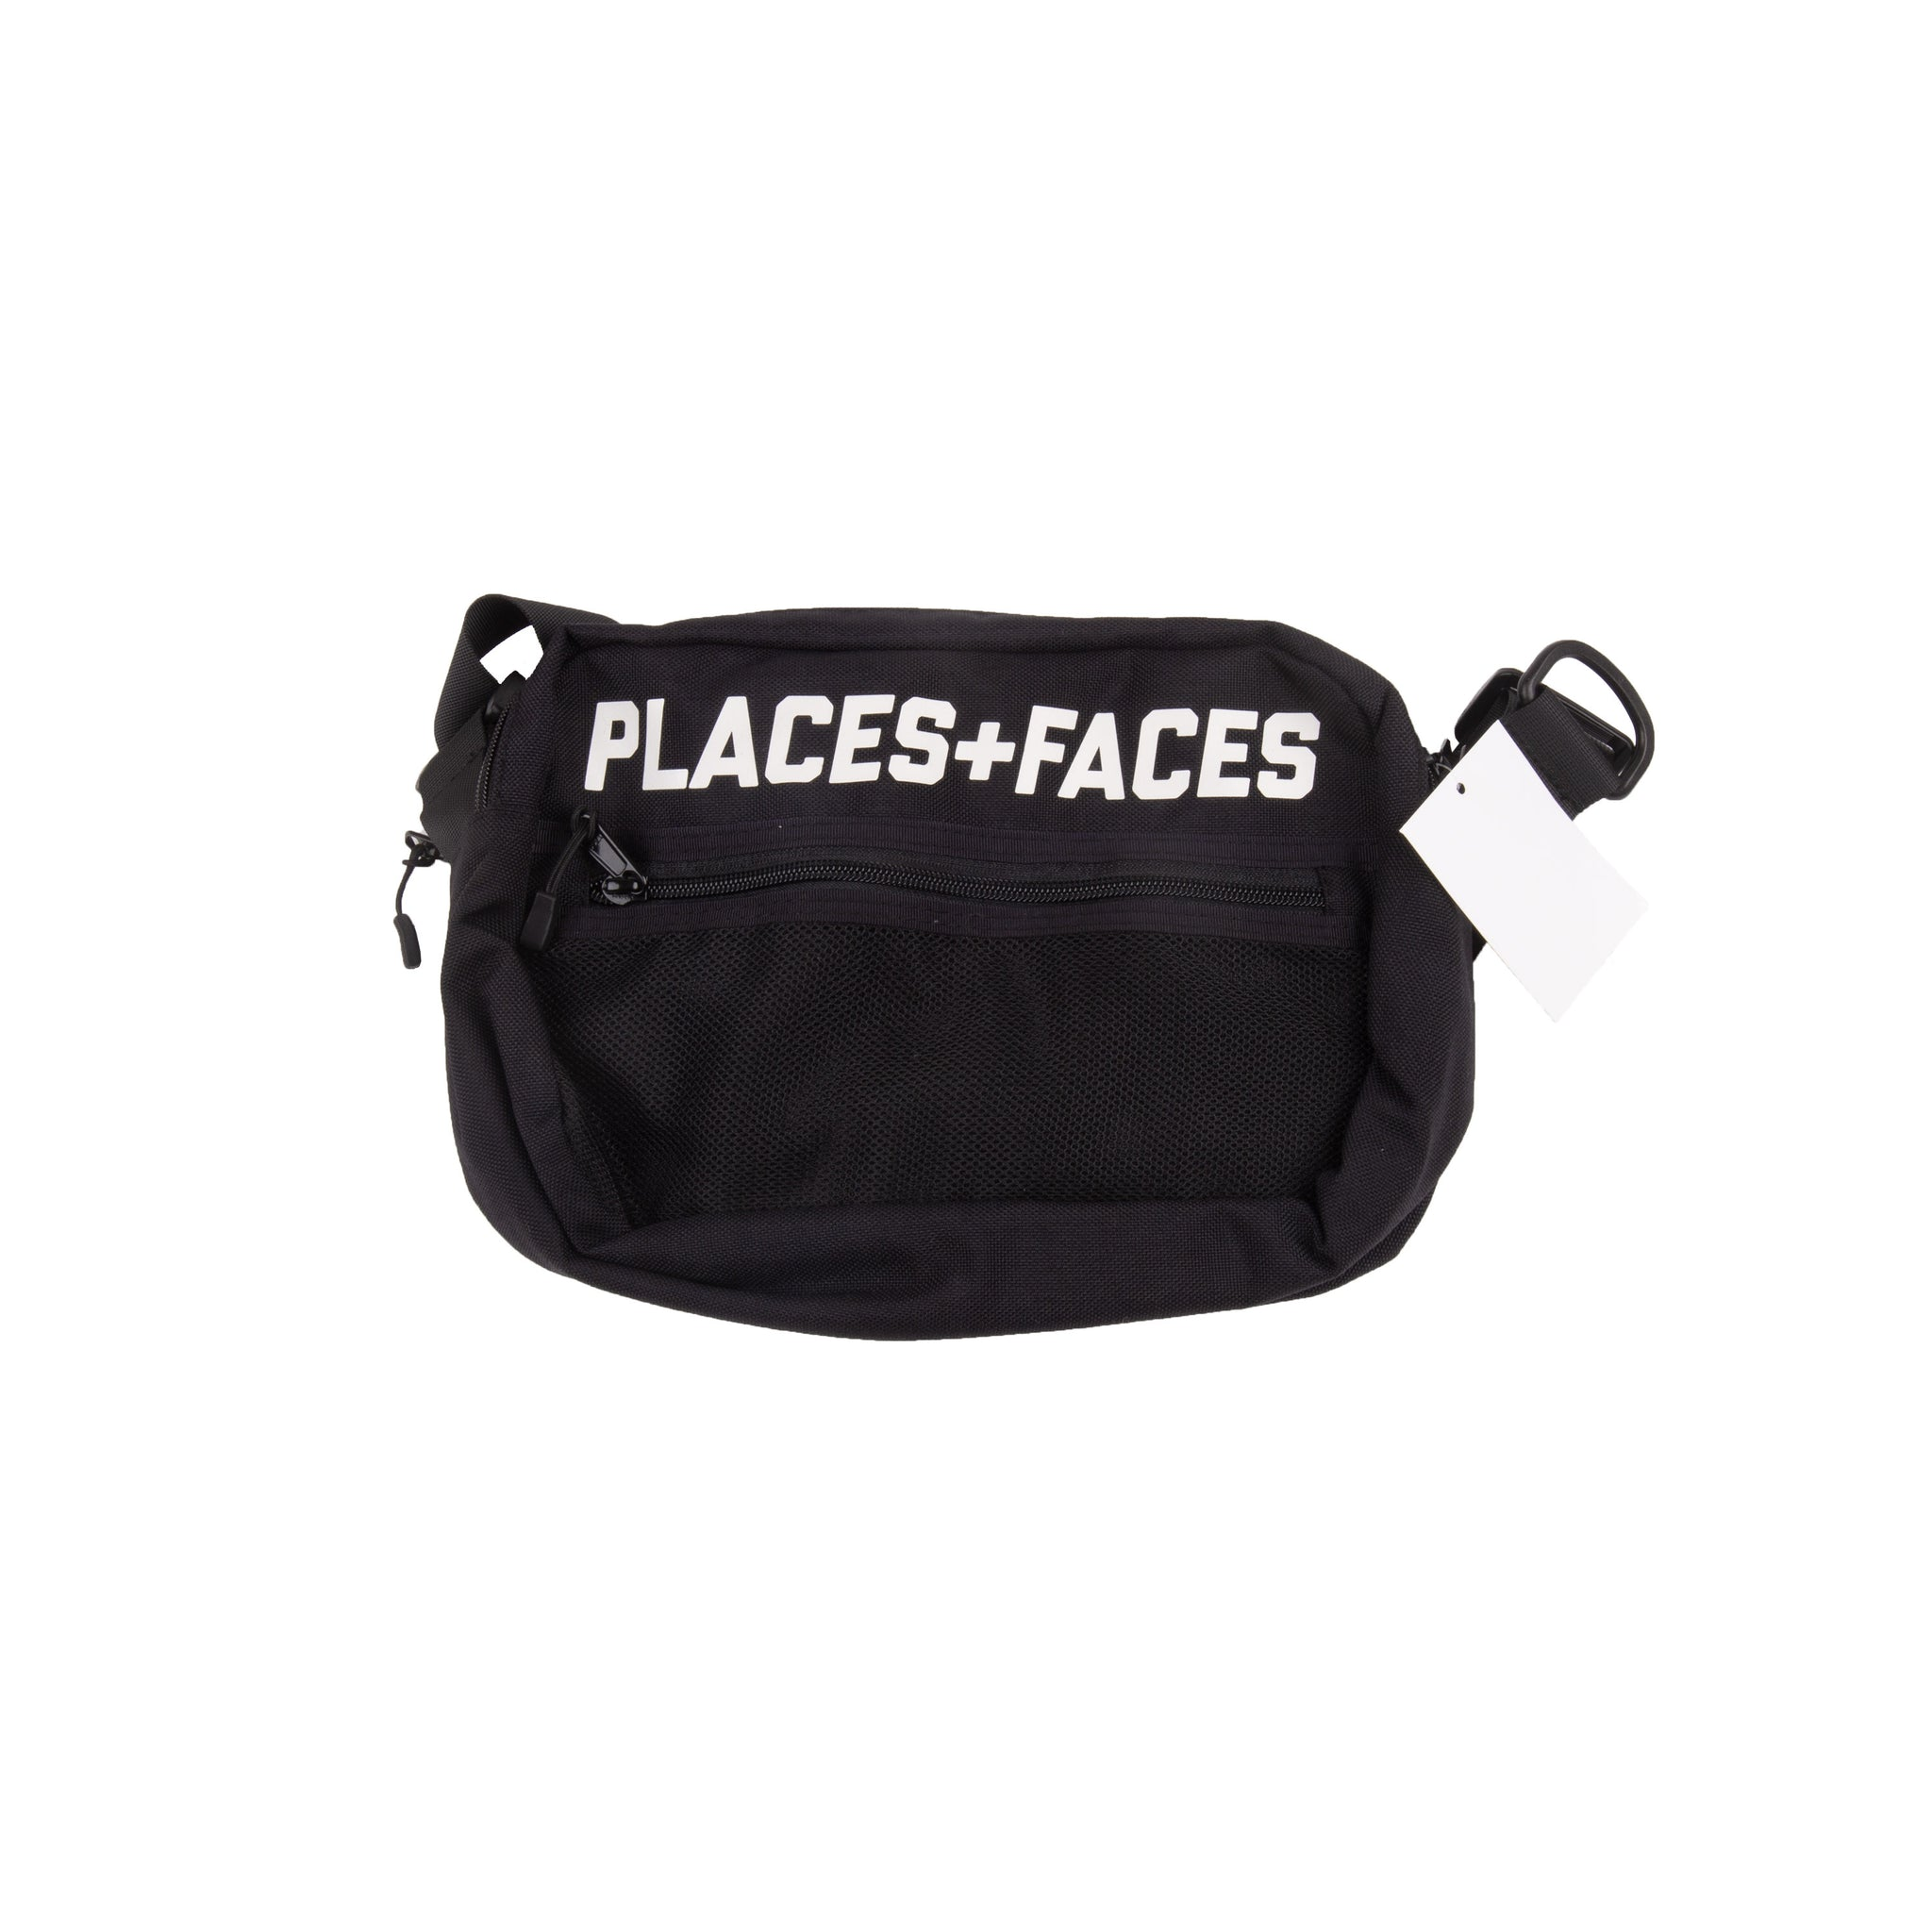 Places + Faces Black Bag